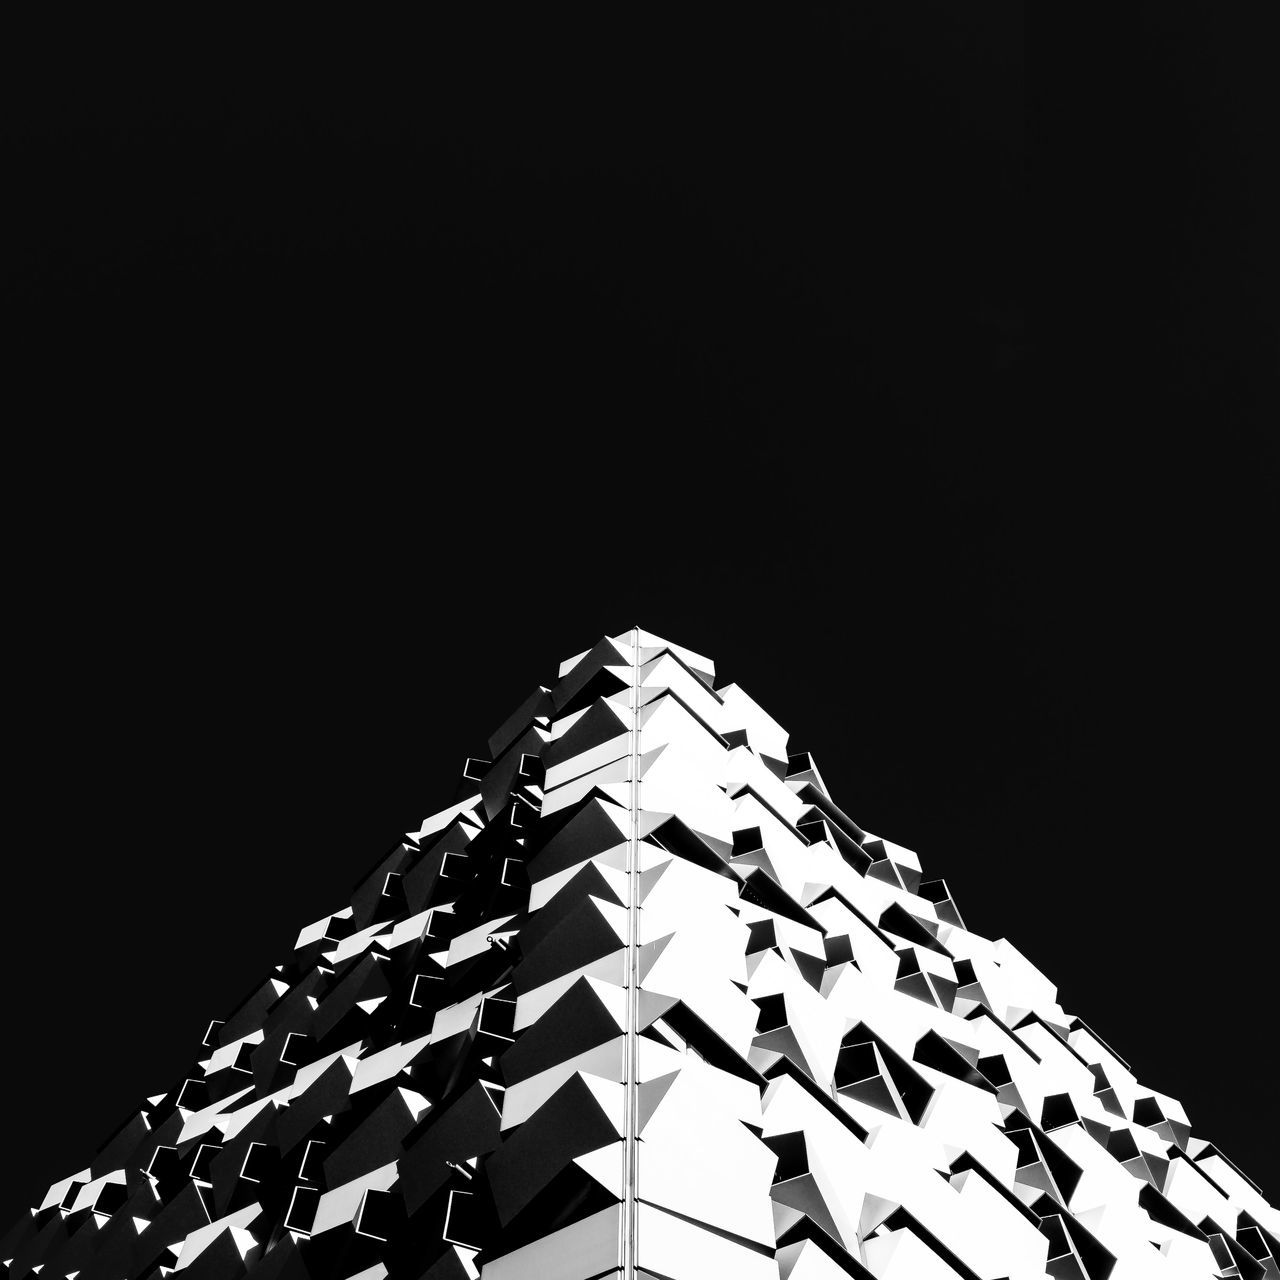 Abstract Abstract Photography Architectural Detail Architectural Feature Architecture Architecture_collection Black & White Black And White Black Background Blackandwhite Photography Copy Space Day Low Angle View Minimal Minimalism Minimalism_bw Minimalist Minimalist Architecture Minimalist Photography  Minimalistic Minimalmood Minimalobsession No People Outdoors Studio Shot